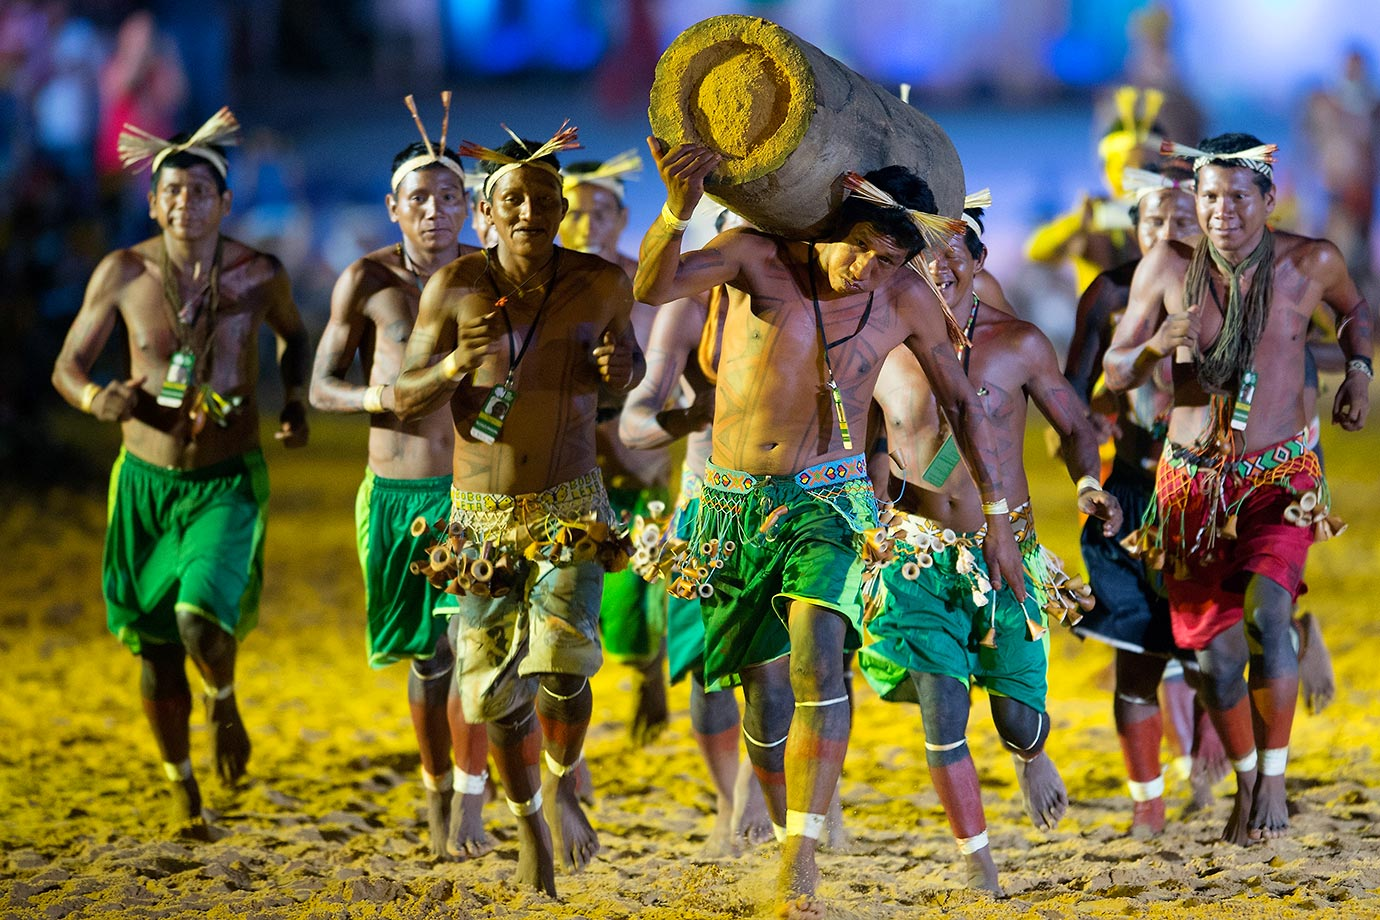 A man carries a painted log during the opening ceremony of the first World Games for Indigenous People in Palmas, Brazil.